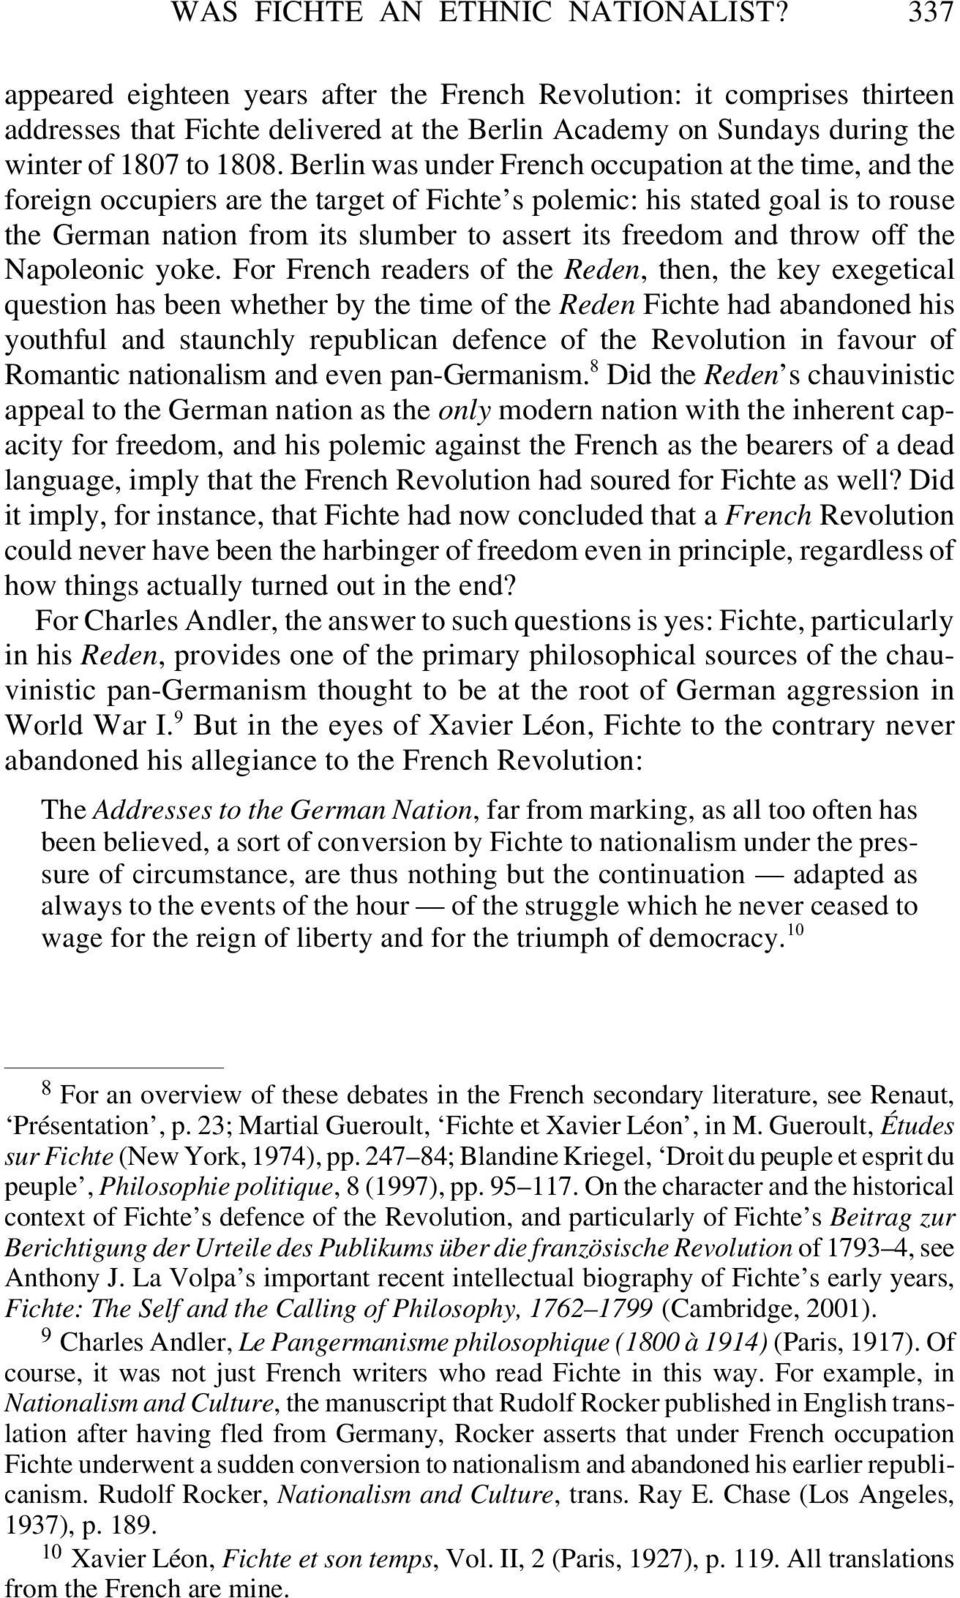 Berlin was under French occupation at the time, and the foreign occupiers are the target of Fichte s polemic: his stated goal is to rouse the German nation from its slumber to assert its freedom and